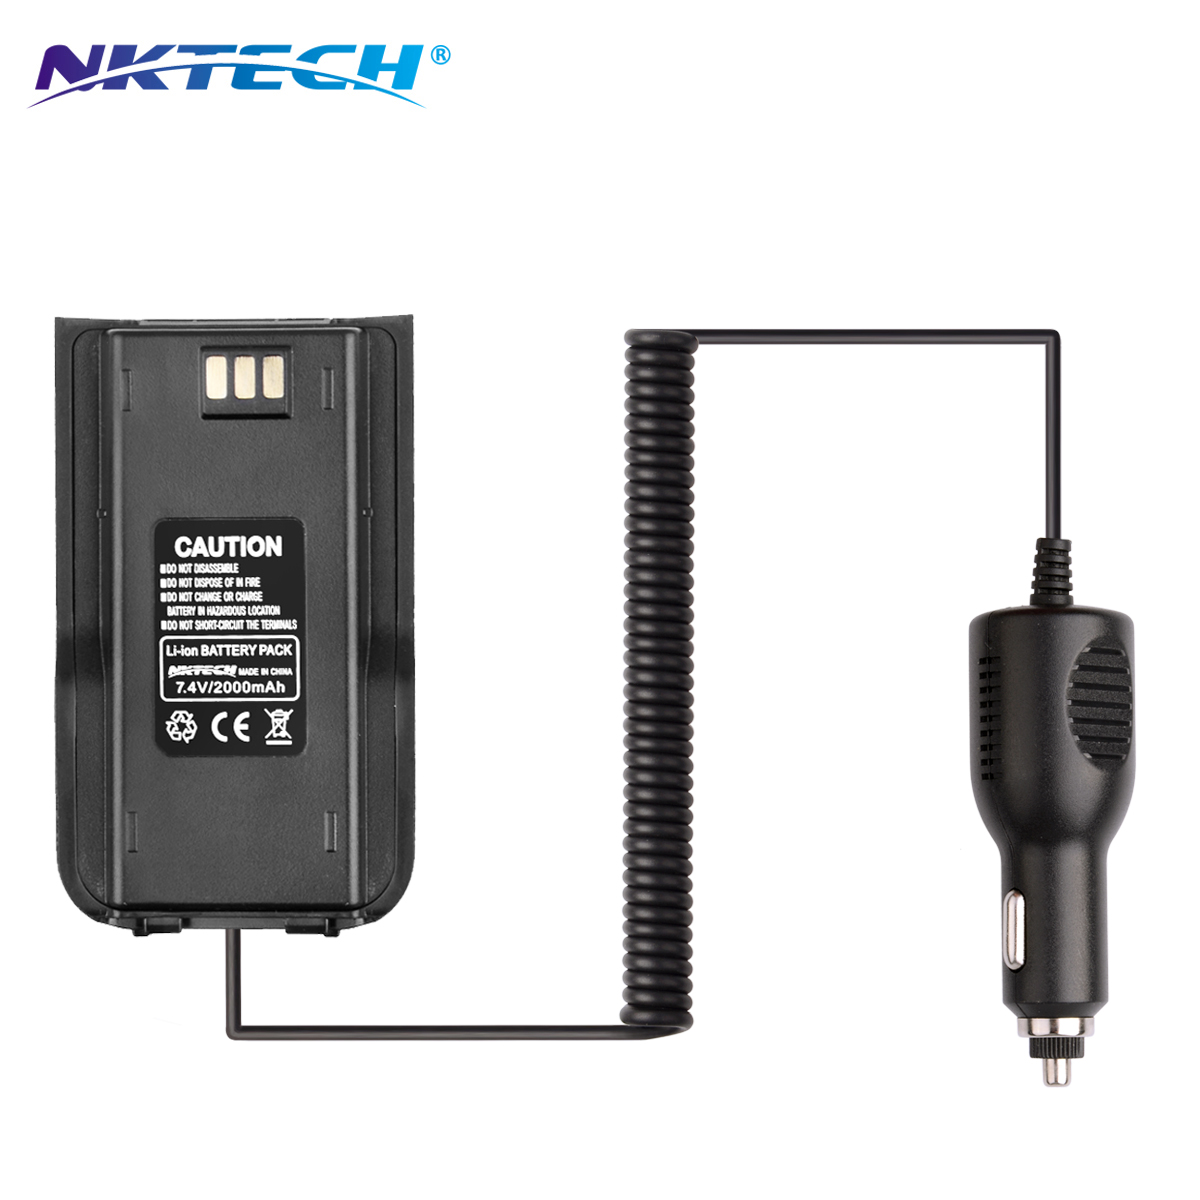 Nktech Car Charger Battery Eliminator 12 24v For Tyt Tytera Md 380 Circuit Pictures Gps Digital Mobile Radio Dmr Uhf Vhf Transceiver In Walkie Talkie From Cellphones